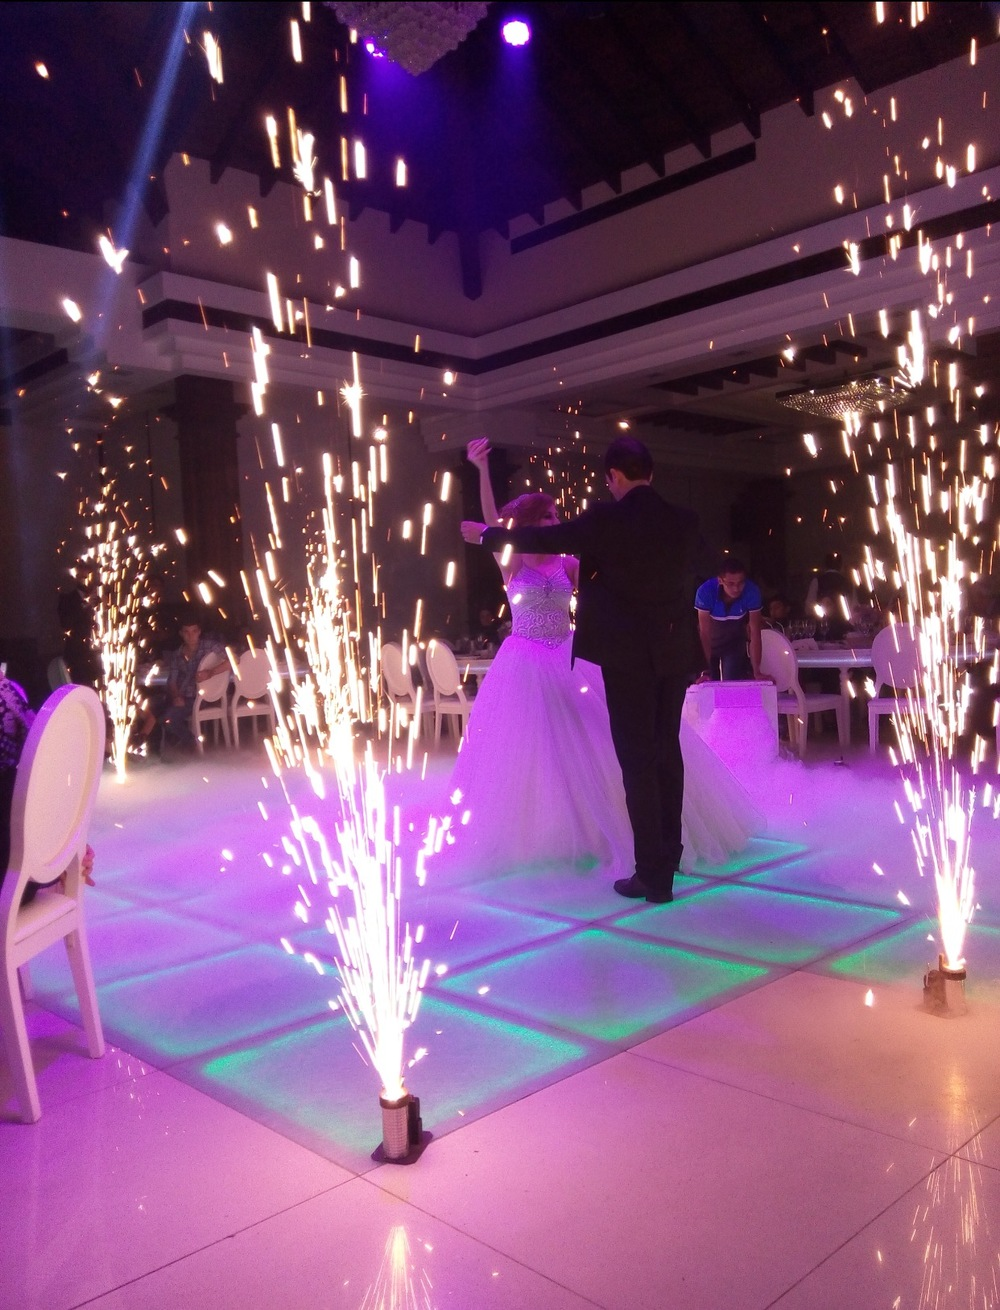 Pyrotechnics, smoke machine and LED lights? NO PROBLEM.